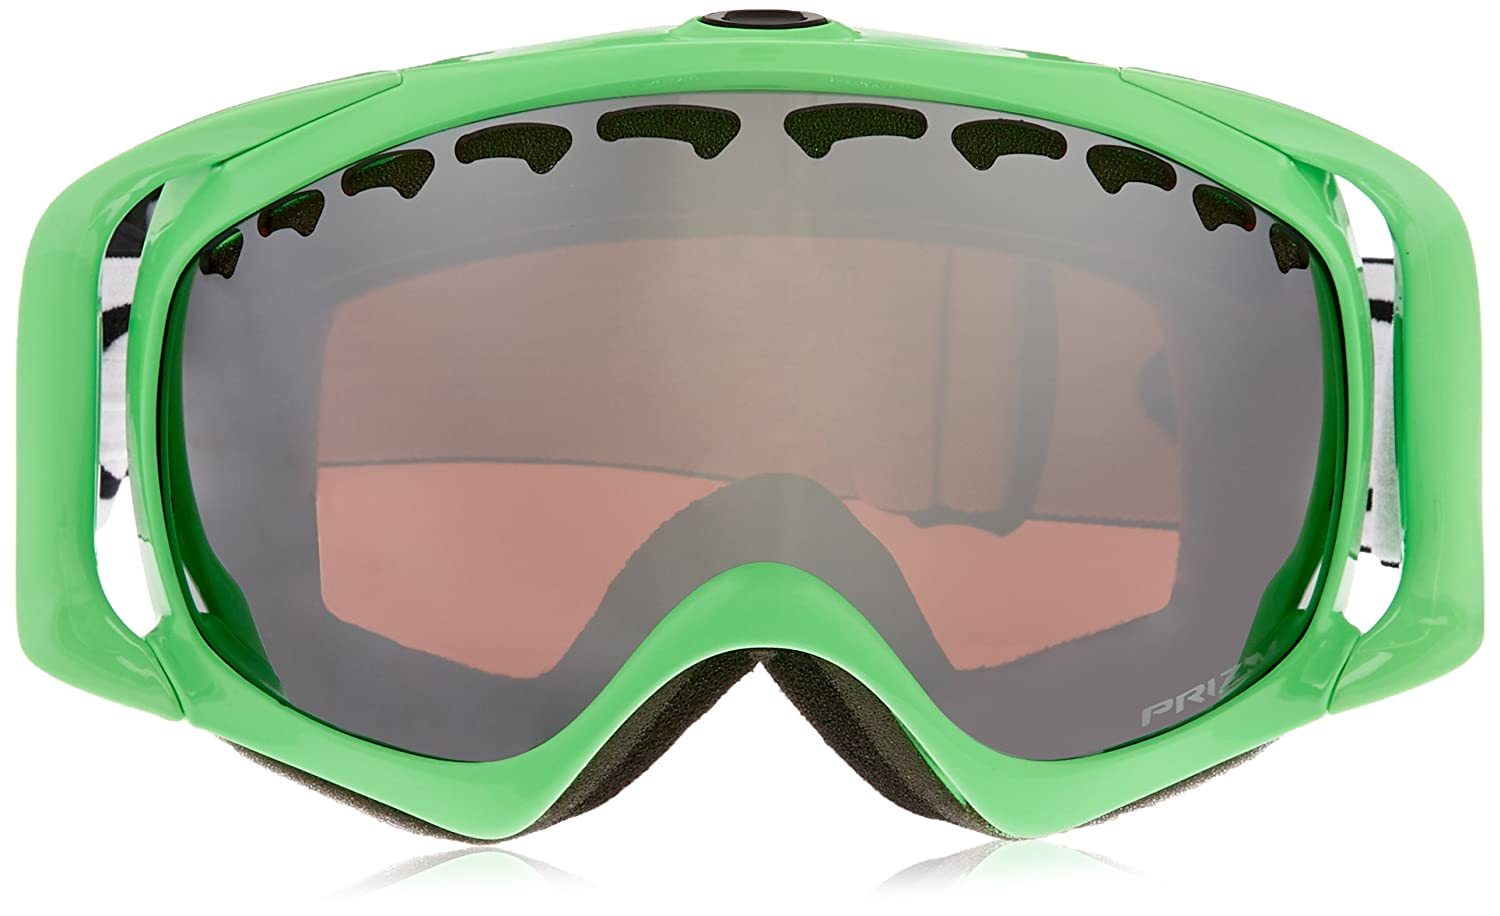 b143c213cd Amazon.com   Oakley Crowbar Adult Prizm Snowsport Snowmobile Goggles  Eyewear - Jet Black Rose   One Size Fits All   Sports   Outdoors